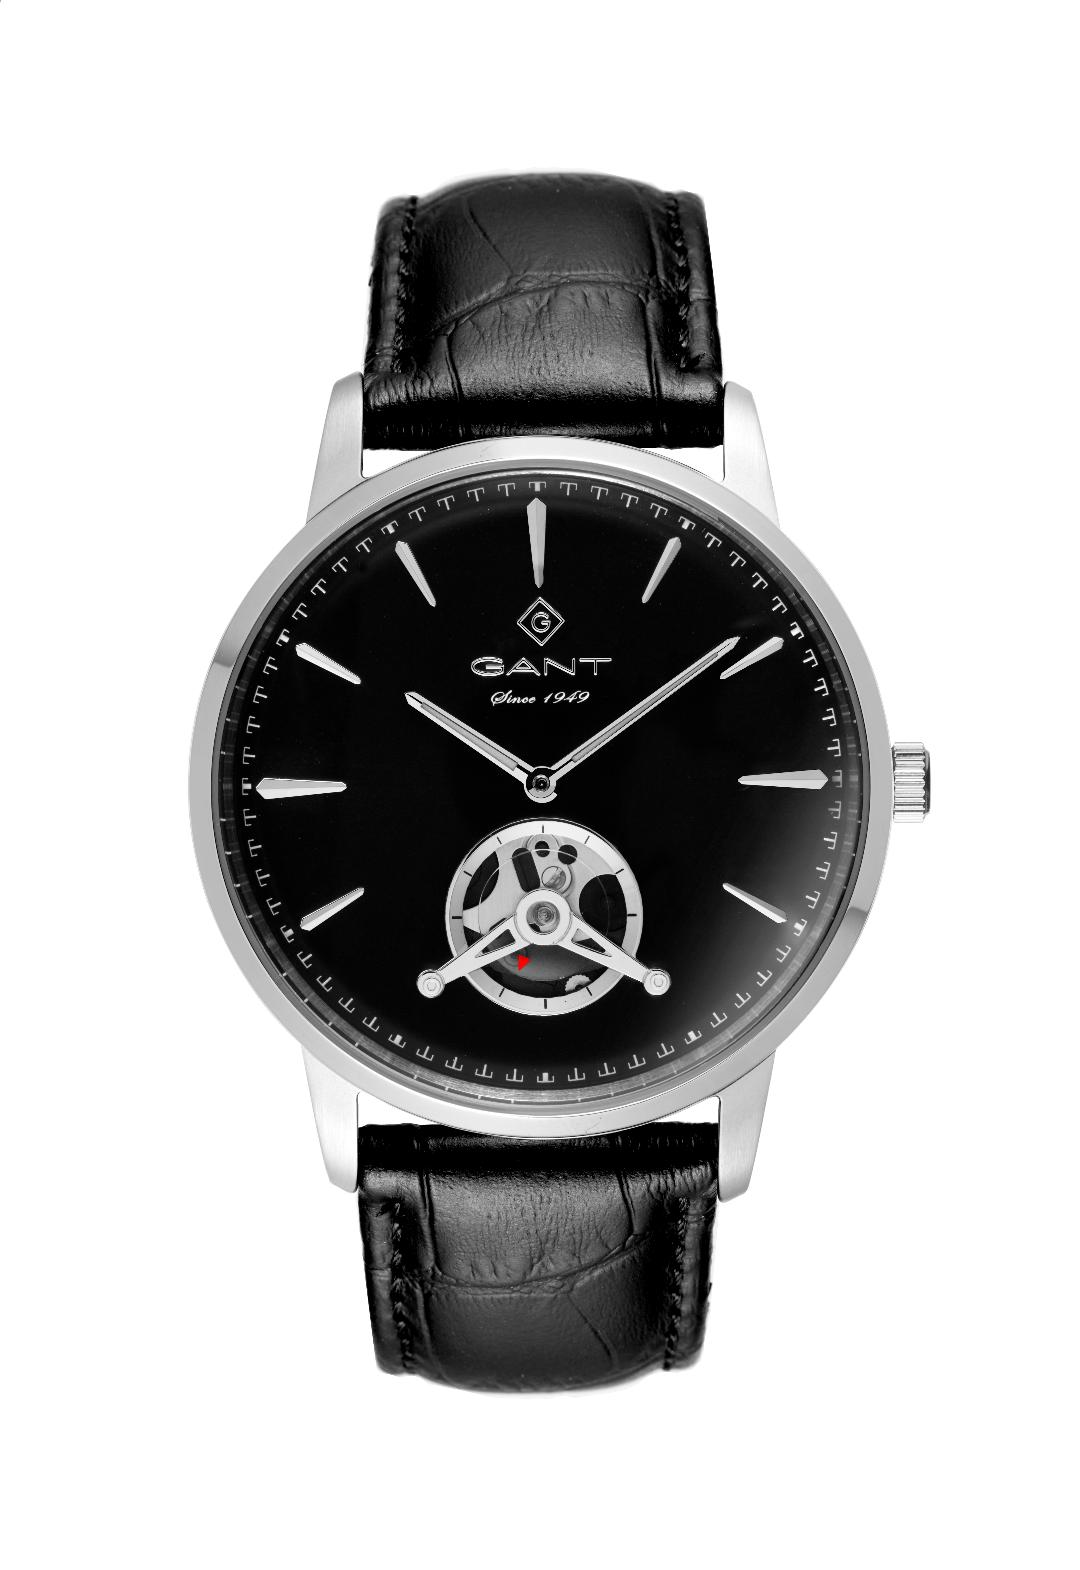 Ανδρικό Ρολόι GANT Park Hempstead Black Leather Strap.